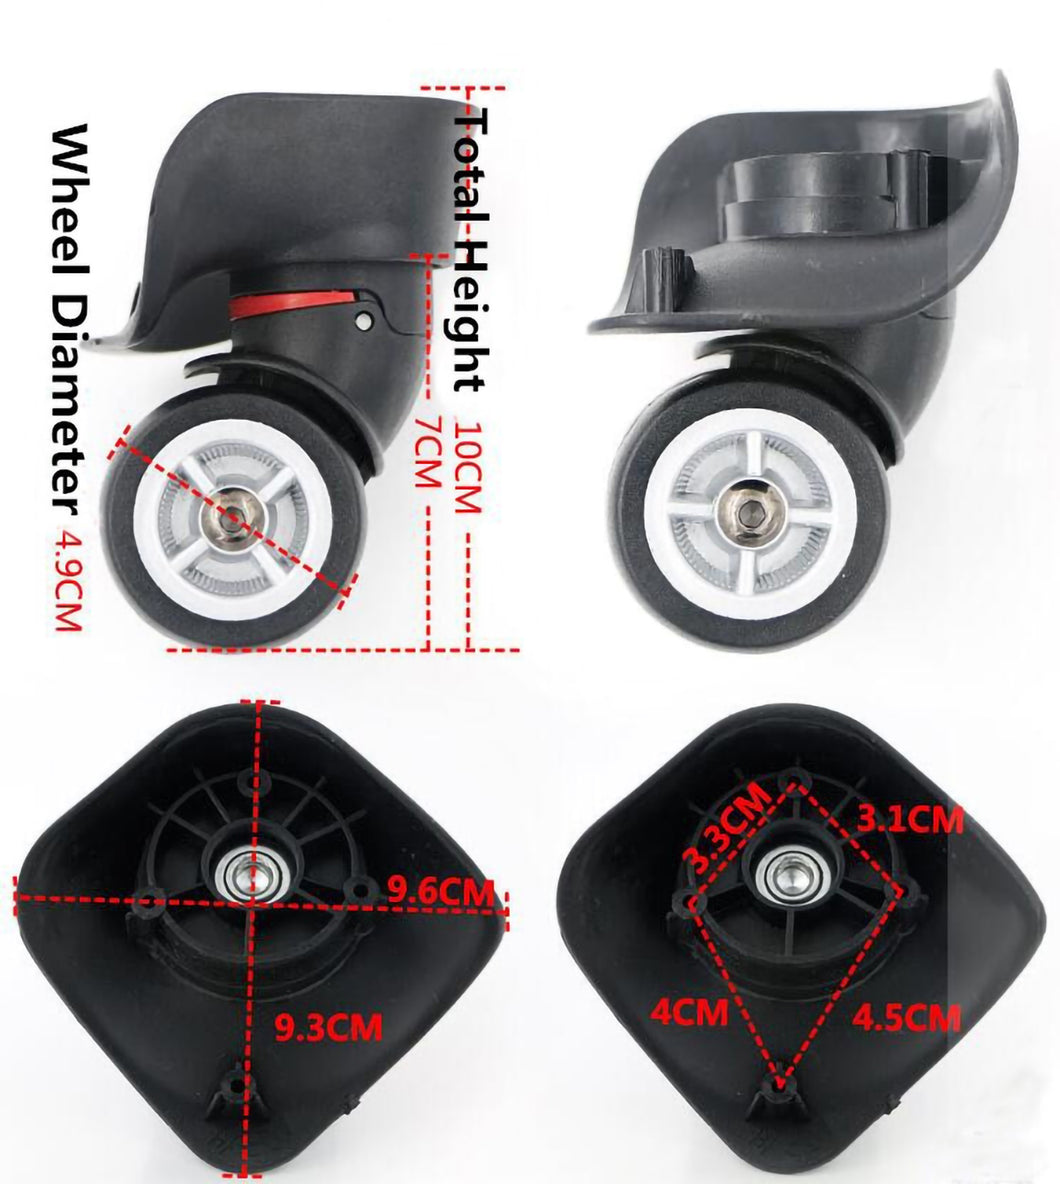 2TRIDENTS 360 Degree Swivel Caster Wheel Outdoor Luggage Travel Suitcase Replacement - Bearings Repair Set for Luggage Kits